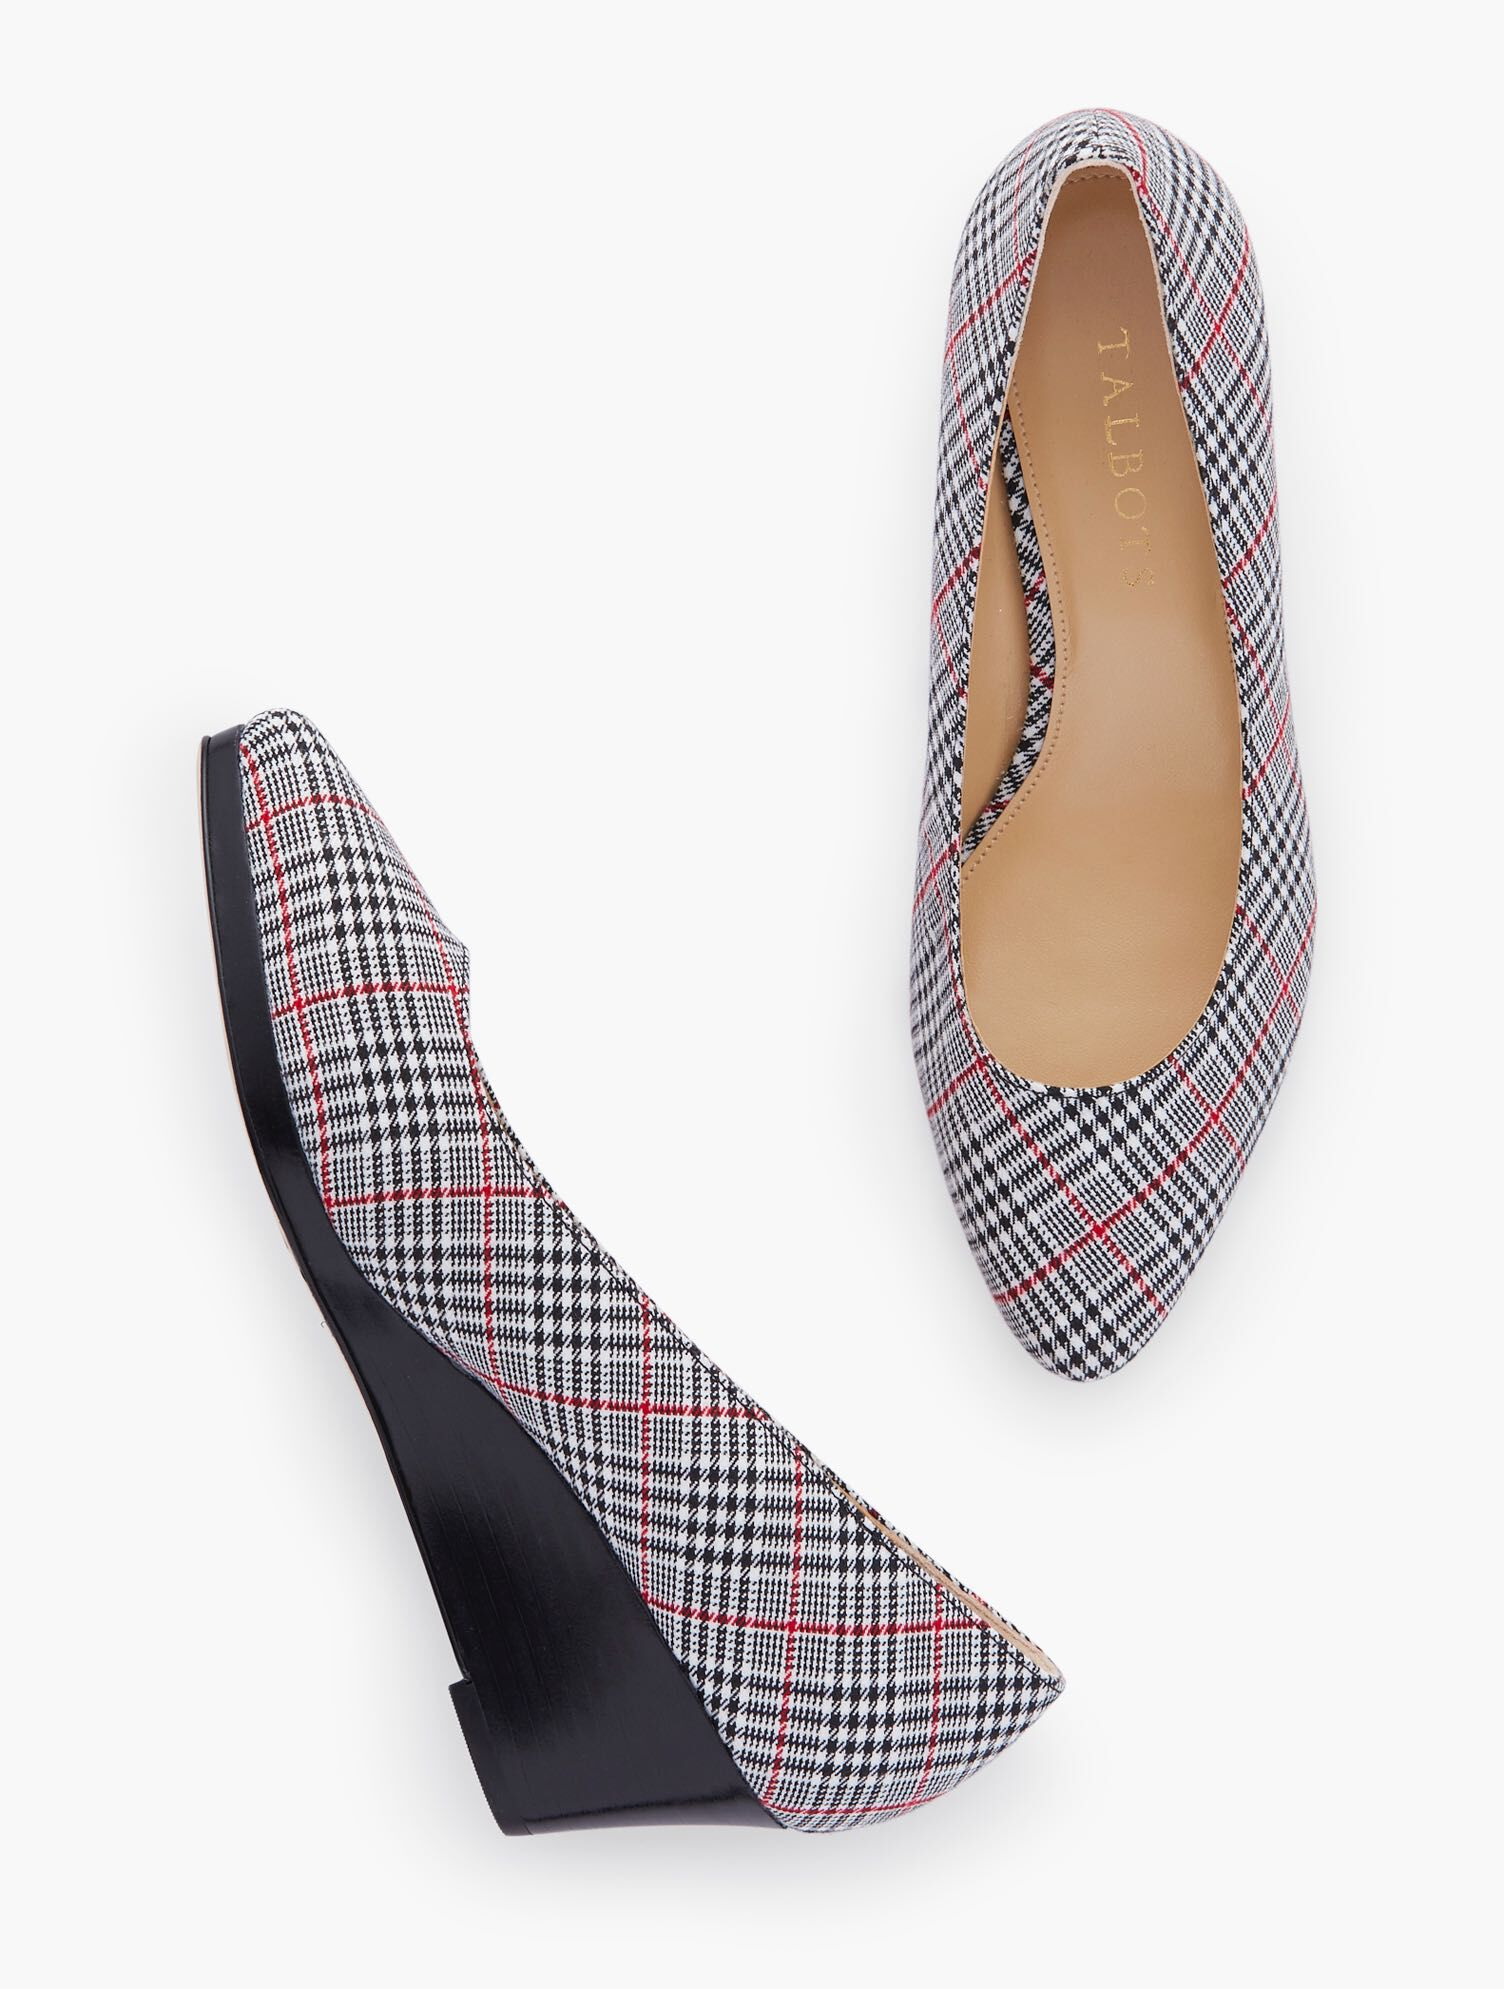 Wide Width Shoes for Women   Talbots